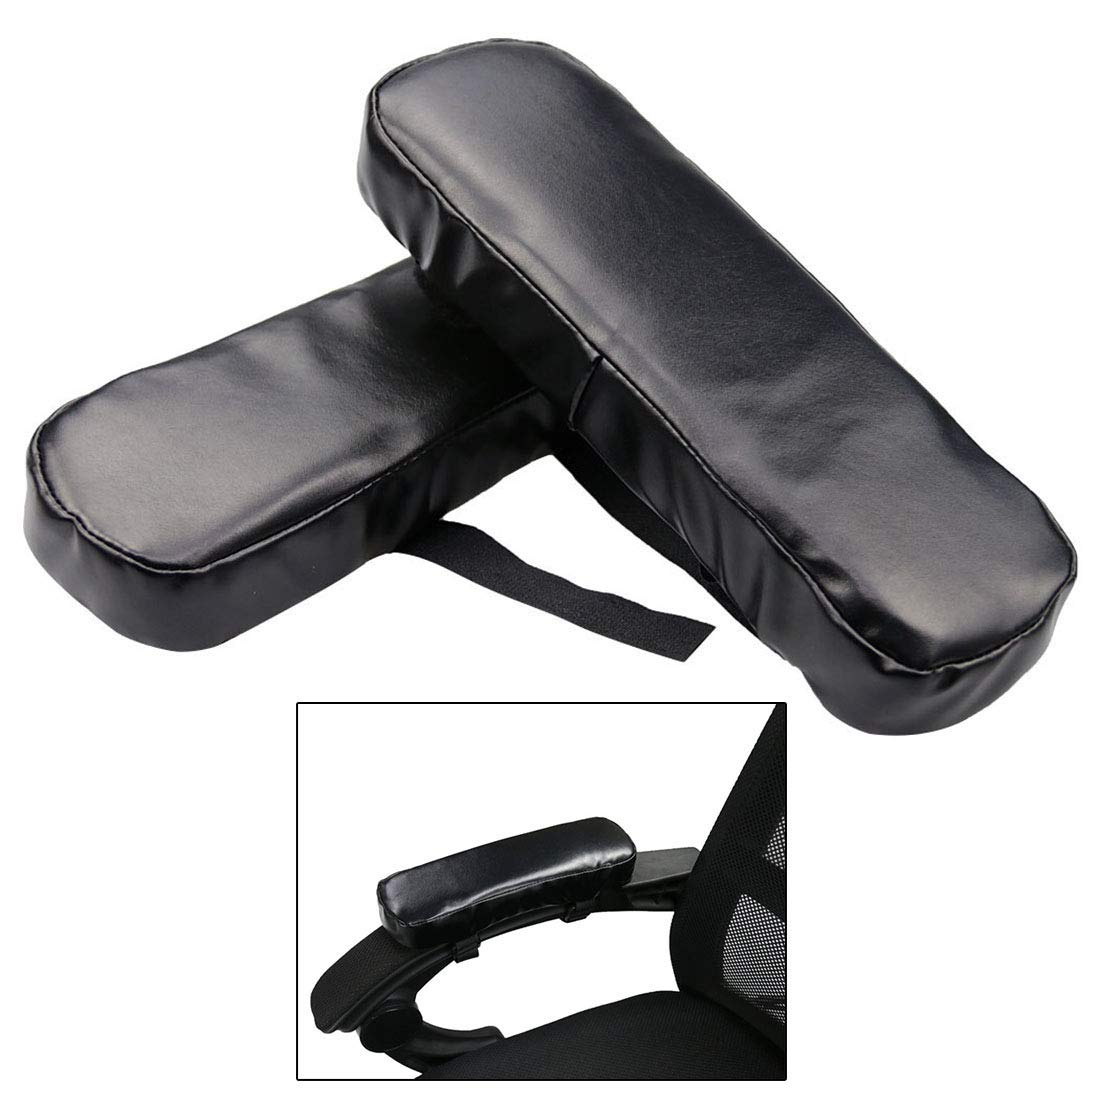 Enerhu Set of 2 Adjustable Waterproof Armrest Pad Memory Foam Armrest Replacement Pads Chair Arm Rest Pads for Office Home Chair Black